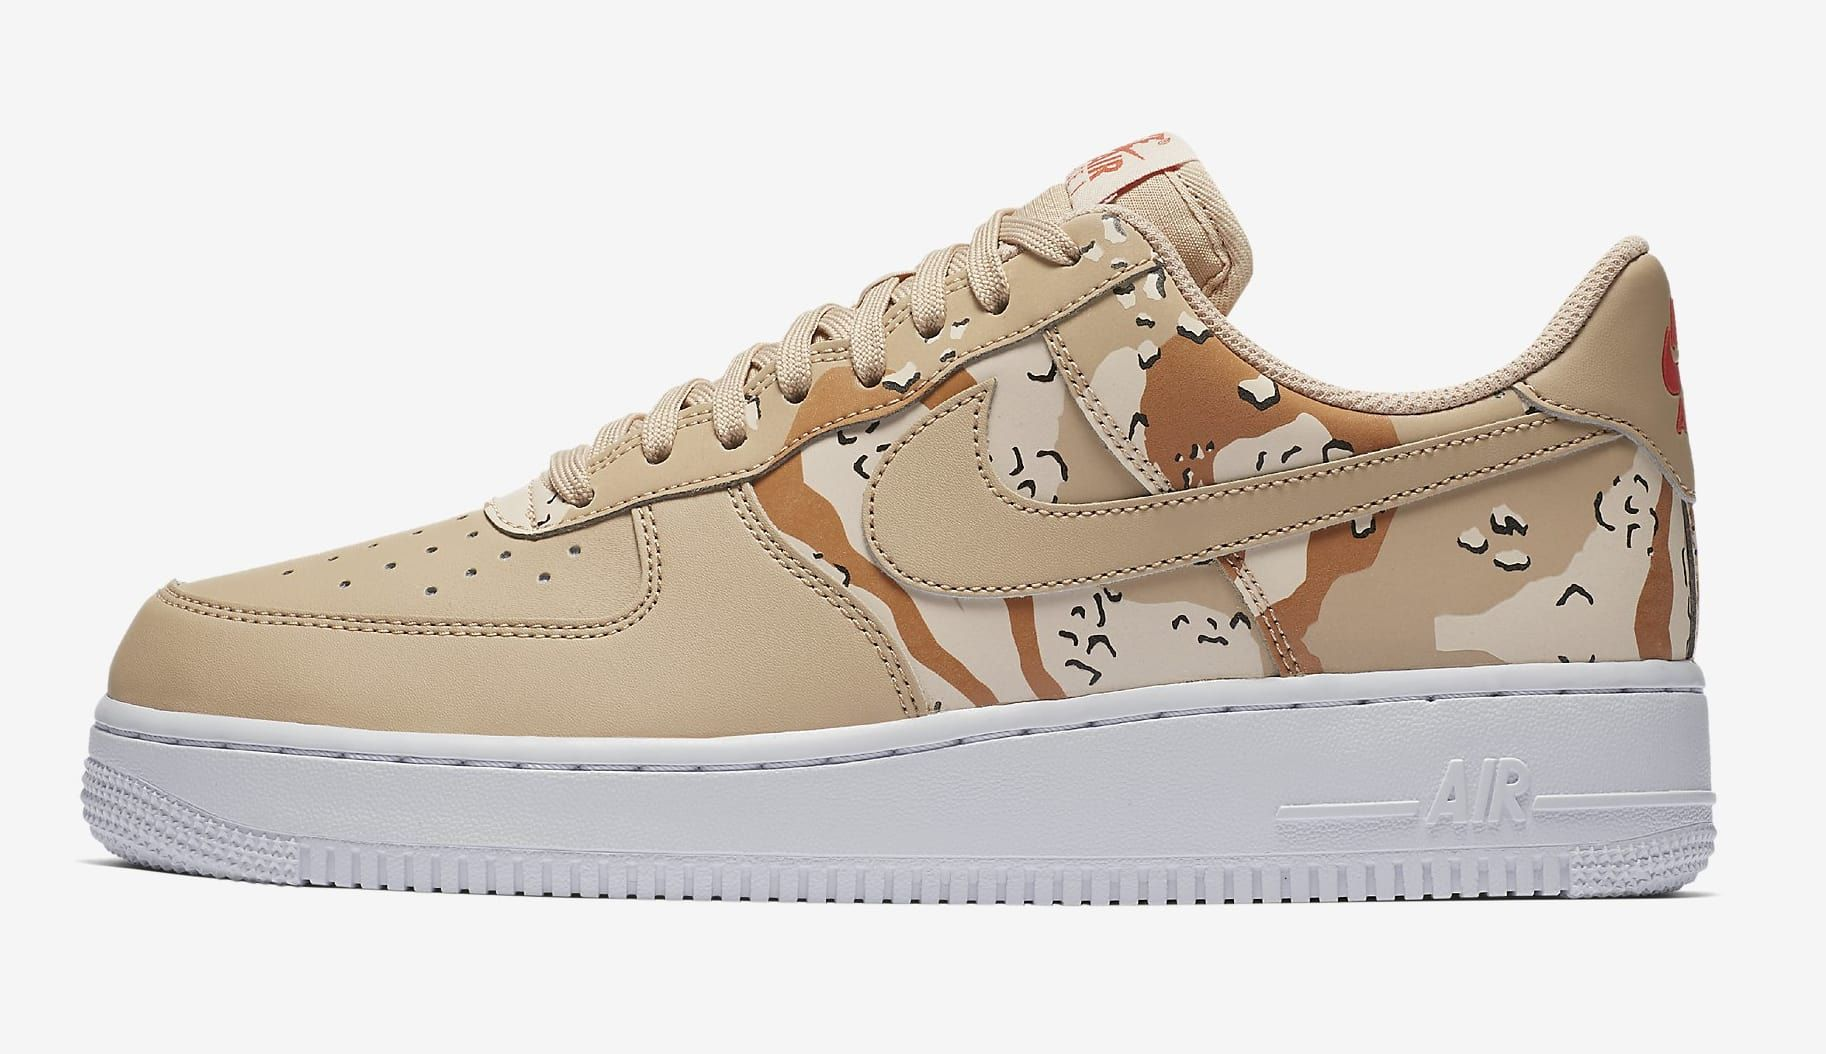 Nike Air Force 1 Low 'Country Camo' 823511 202 (Lateral)